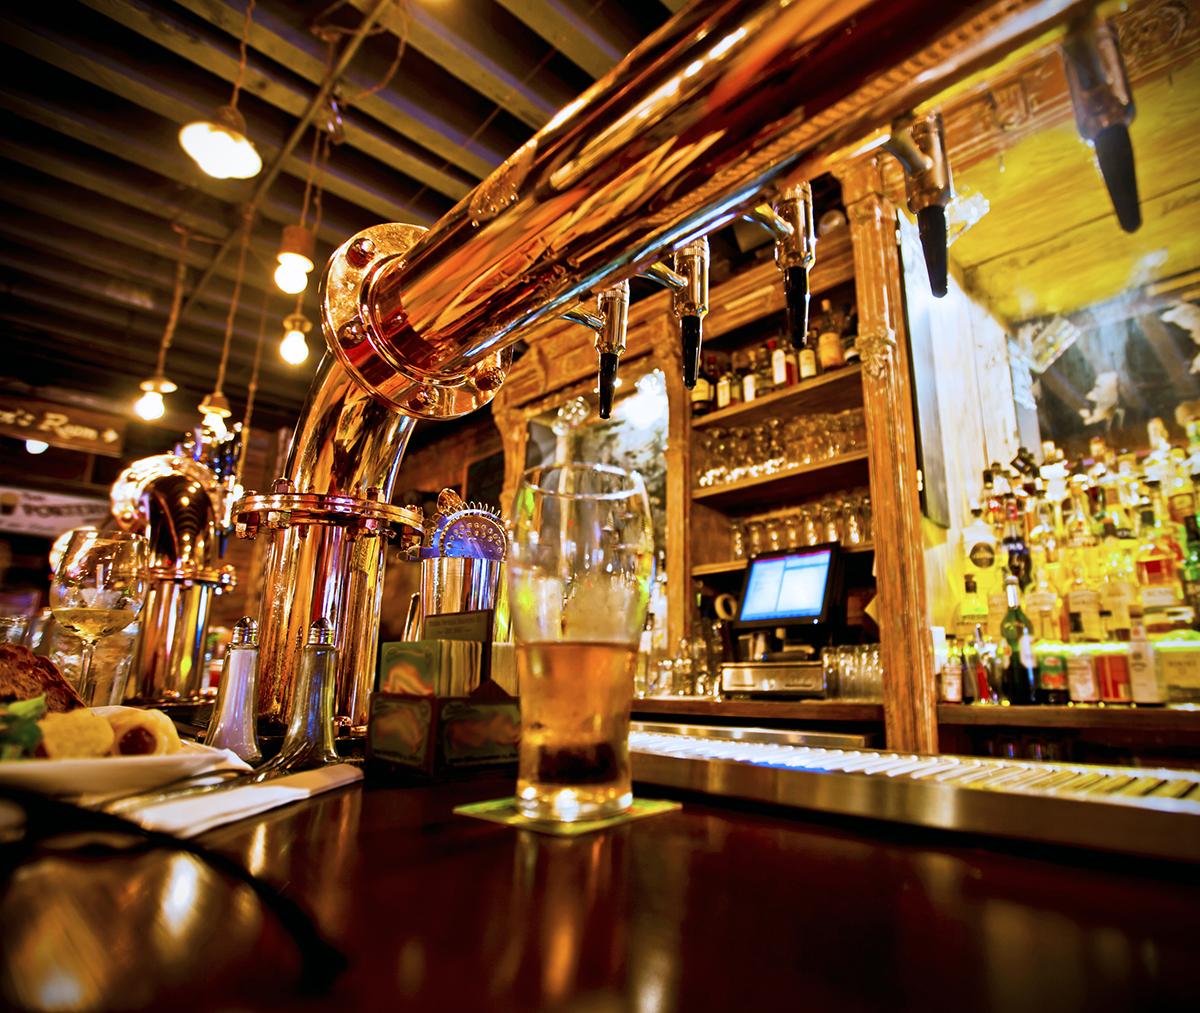 Glass of beer and beer taps in a bar